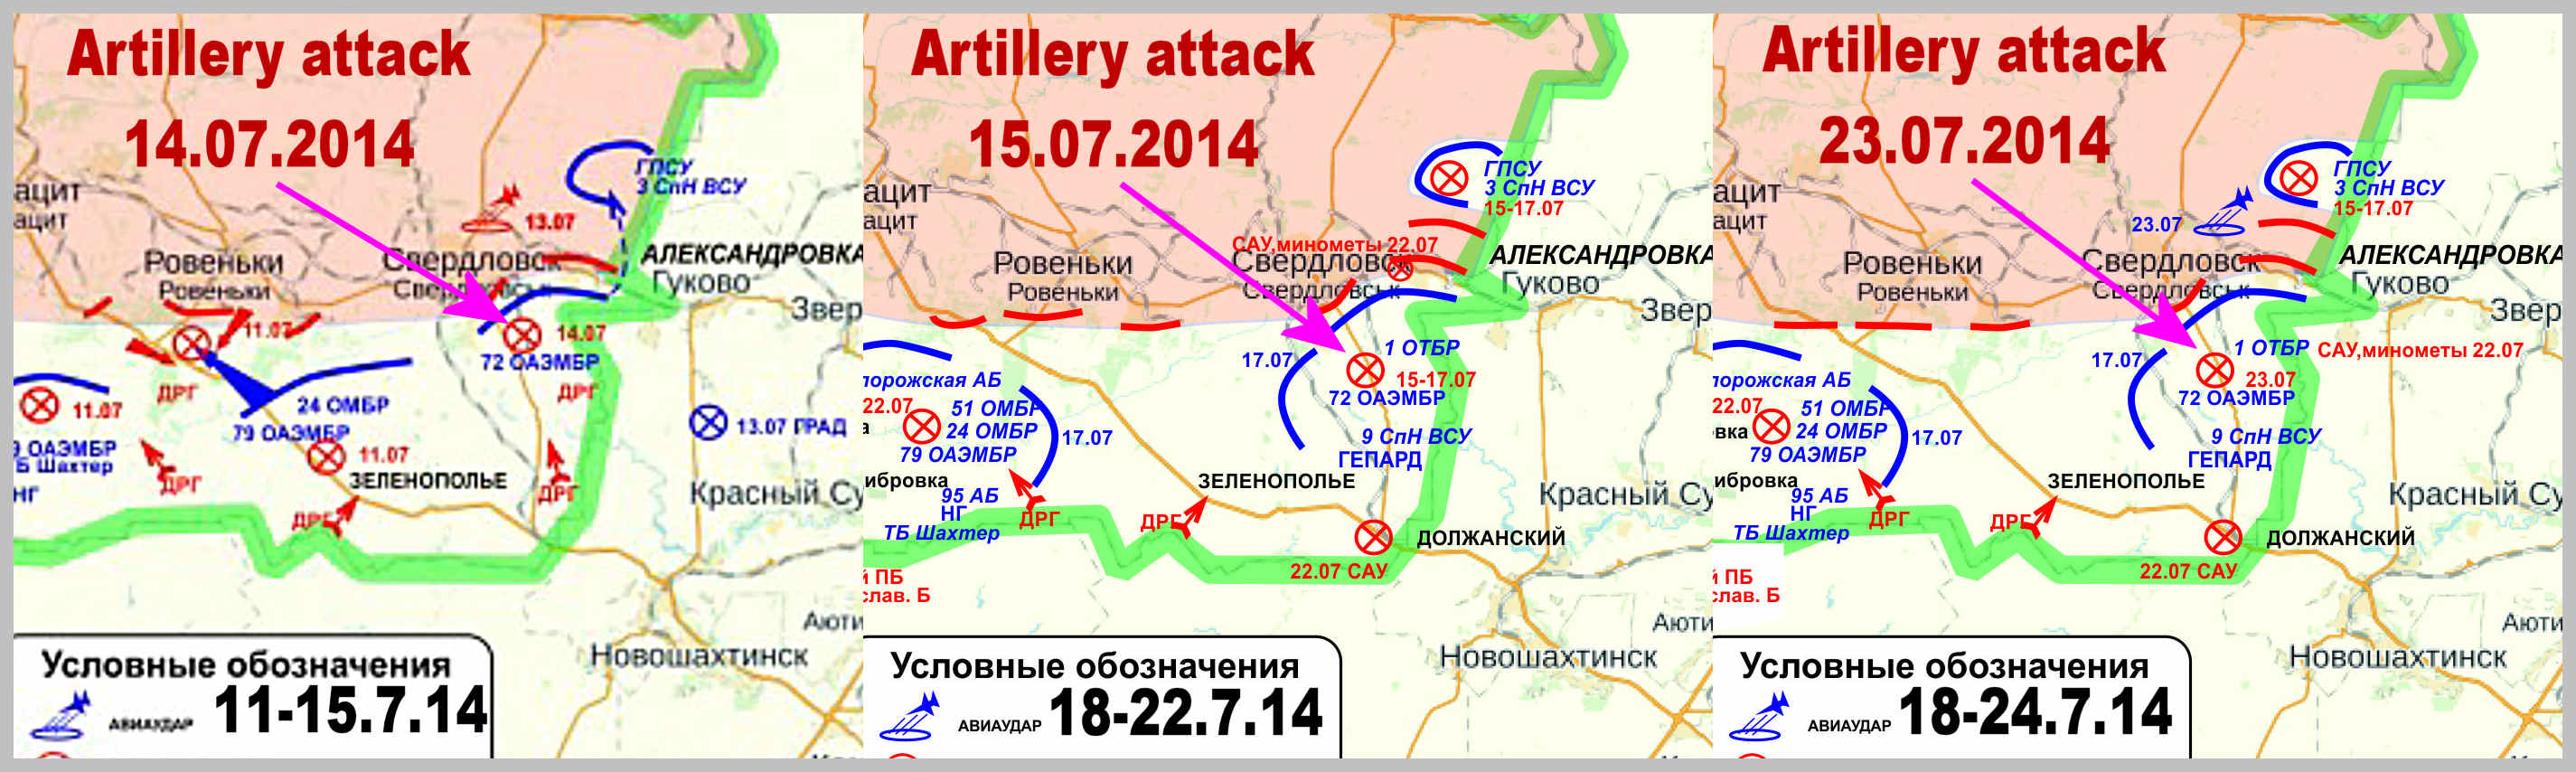 attles southeast of Sverdlovsk from 11 to 24 July 2014 (map from pro-russian sites)